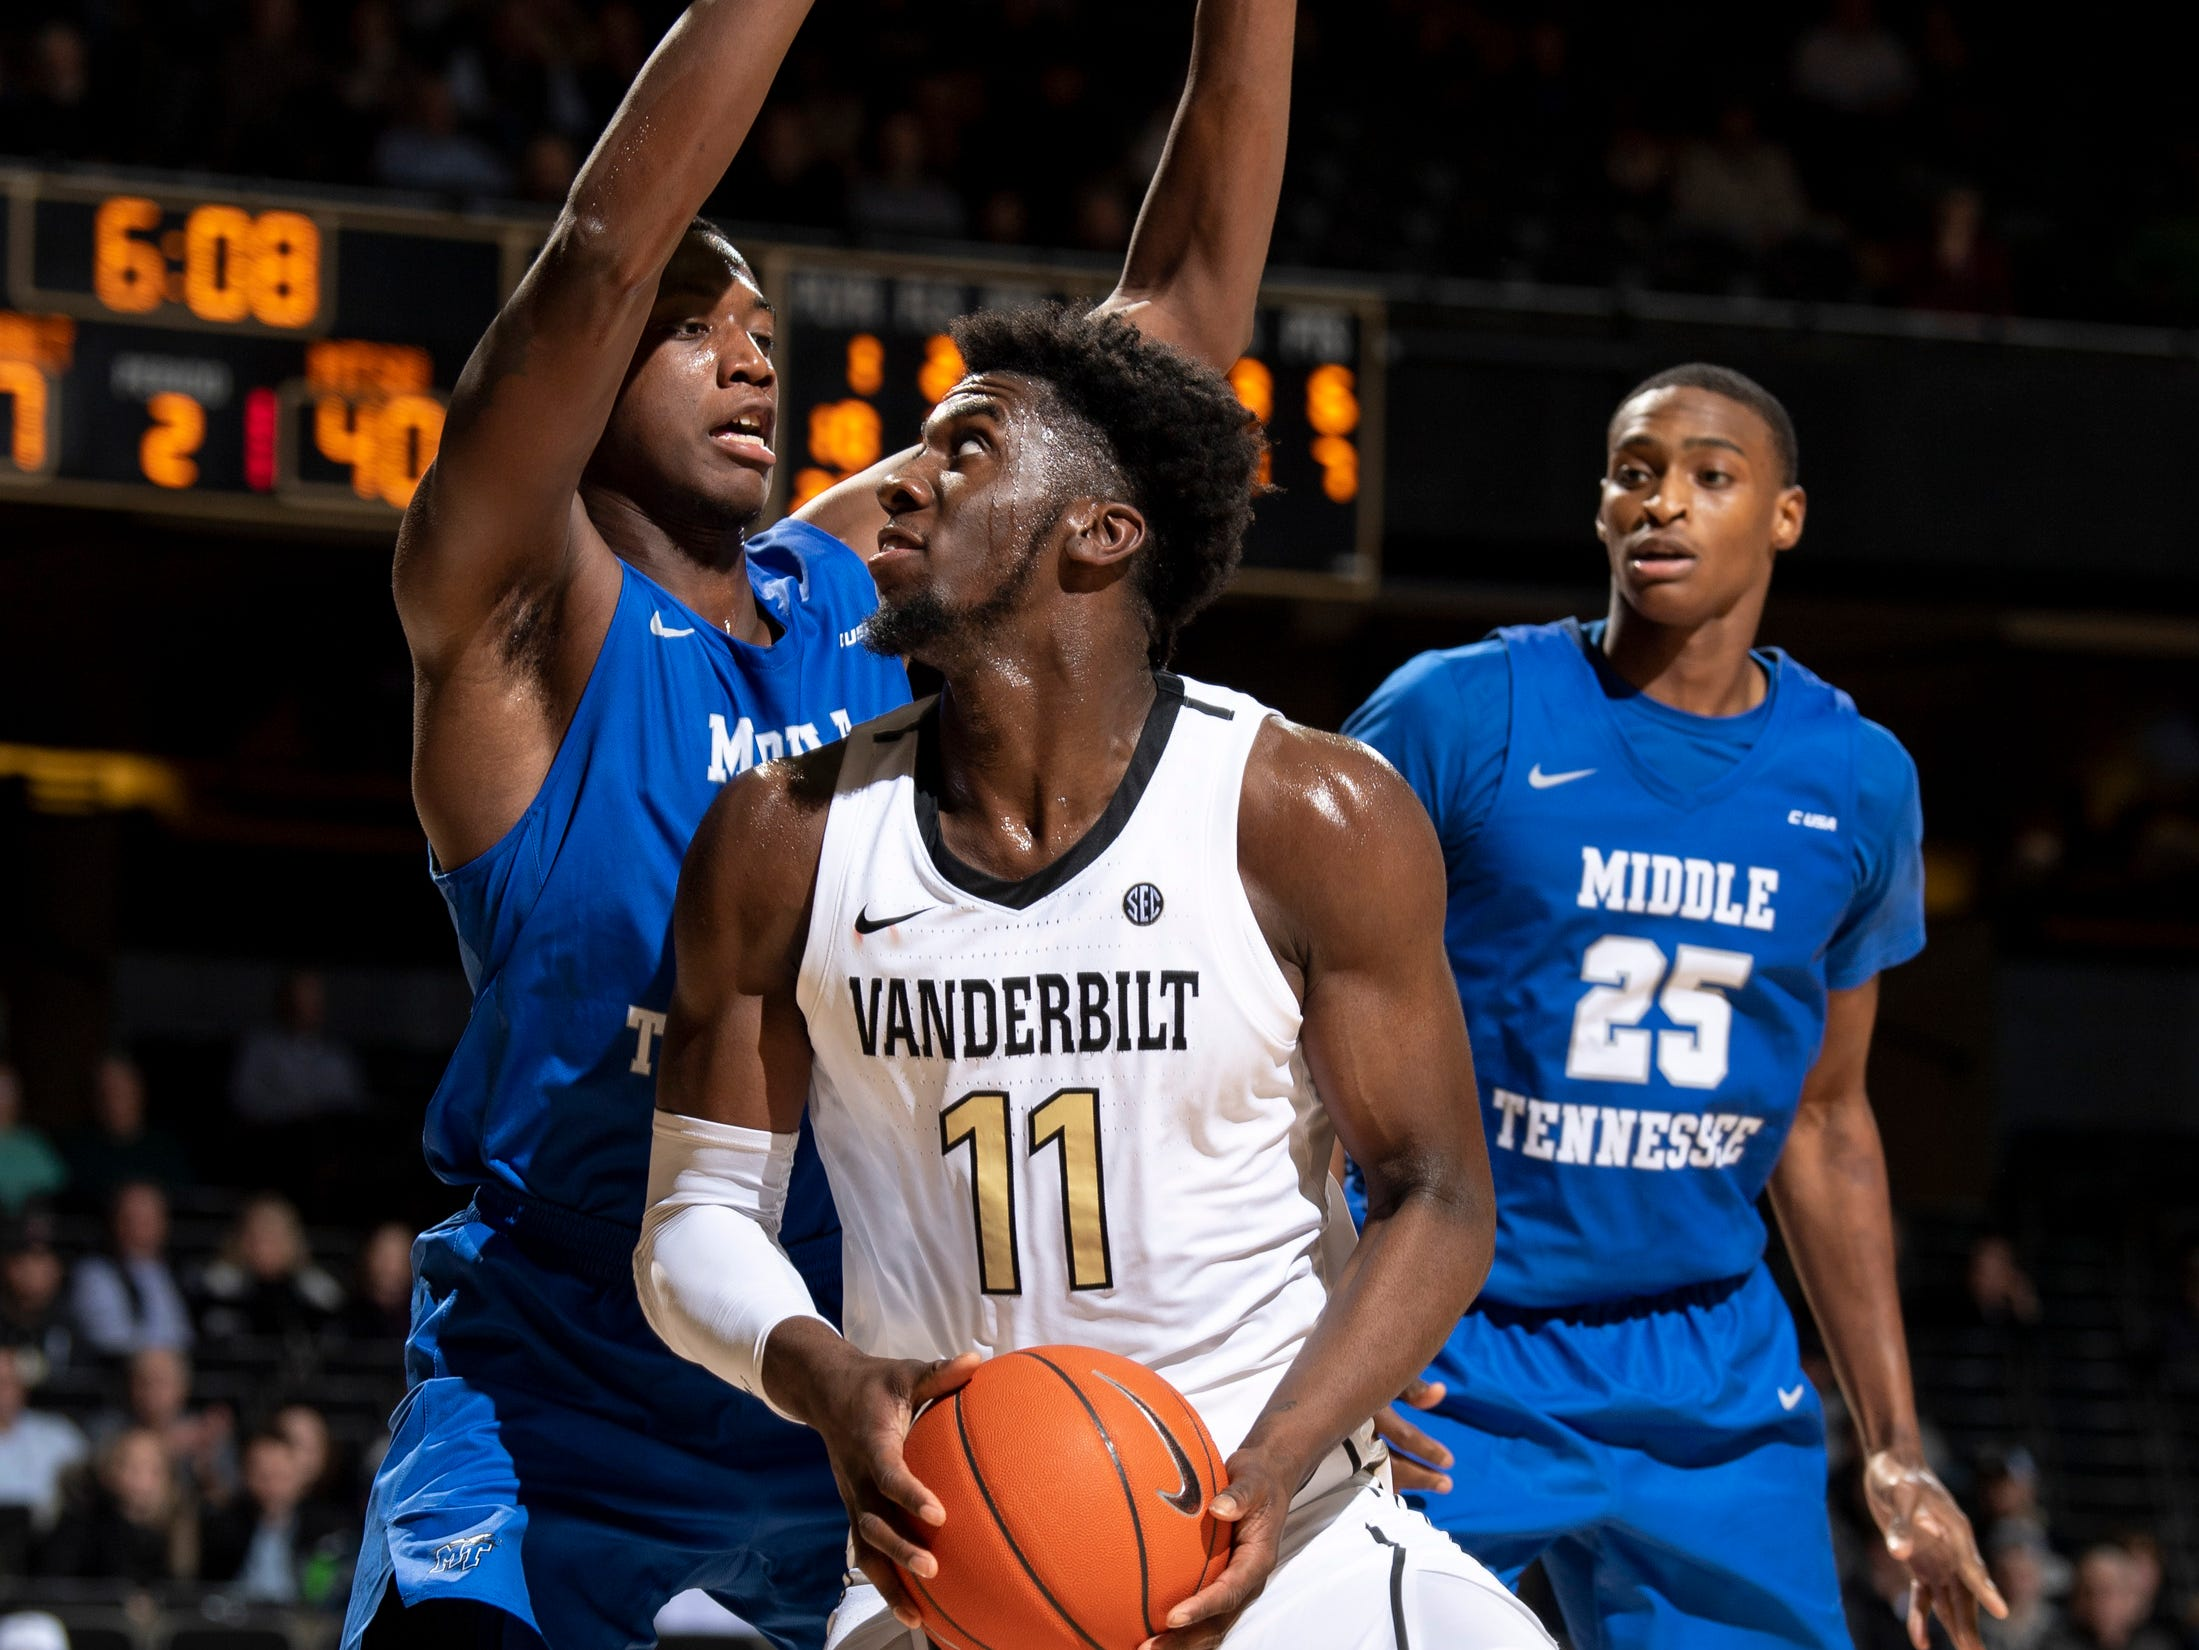 MTSU forward Reggie Scurry (22) guards Vanderbilt forward Simisola Shittu (11) during the second half at Memorial Gym in Nashville, Tenn., Wednesday, Dec. 5, 2018.